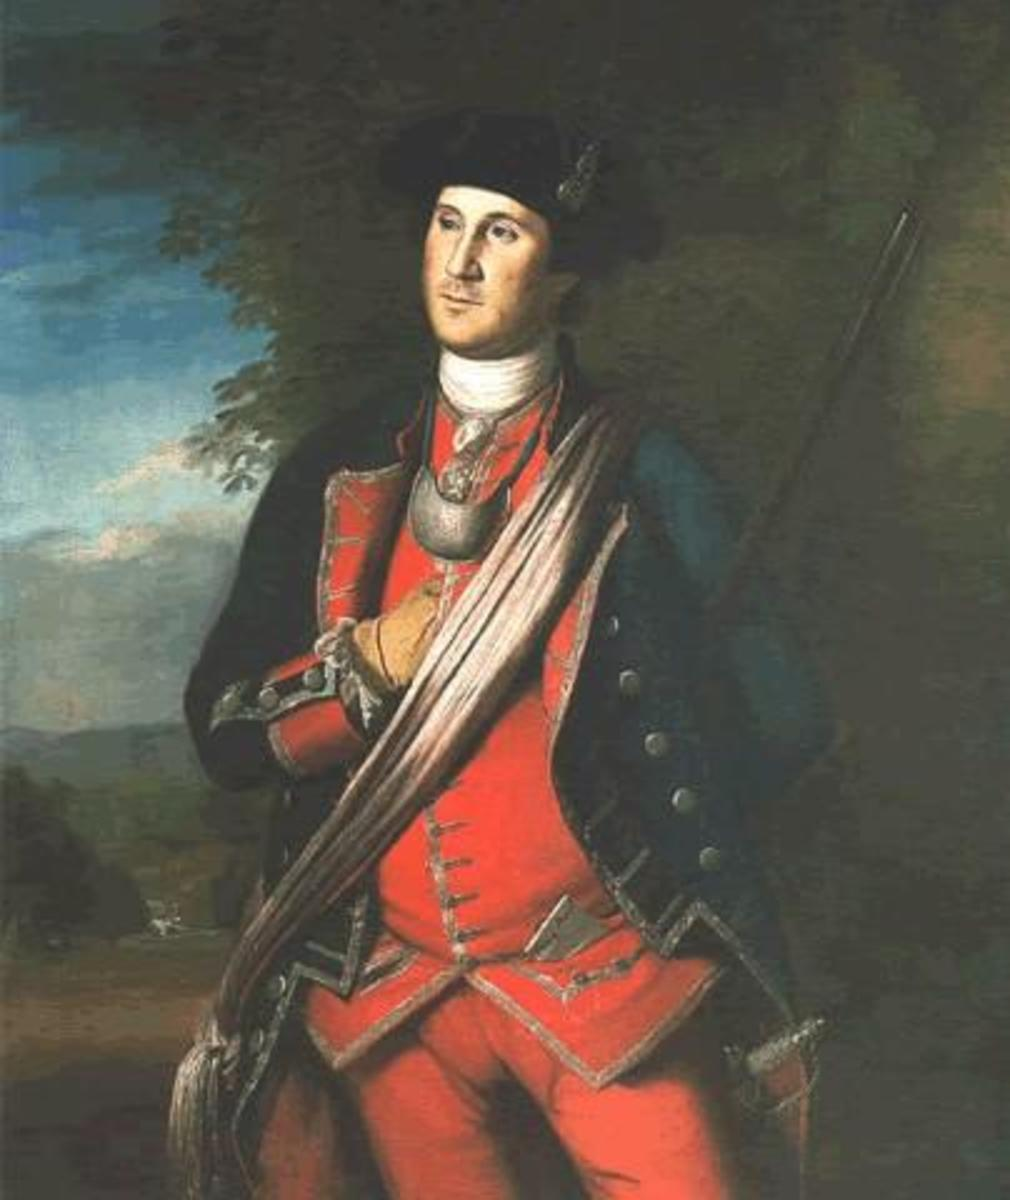 George Washington as a Lt. Colonel in the Virginia Militia during the French and Indian War